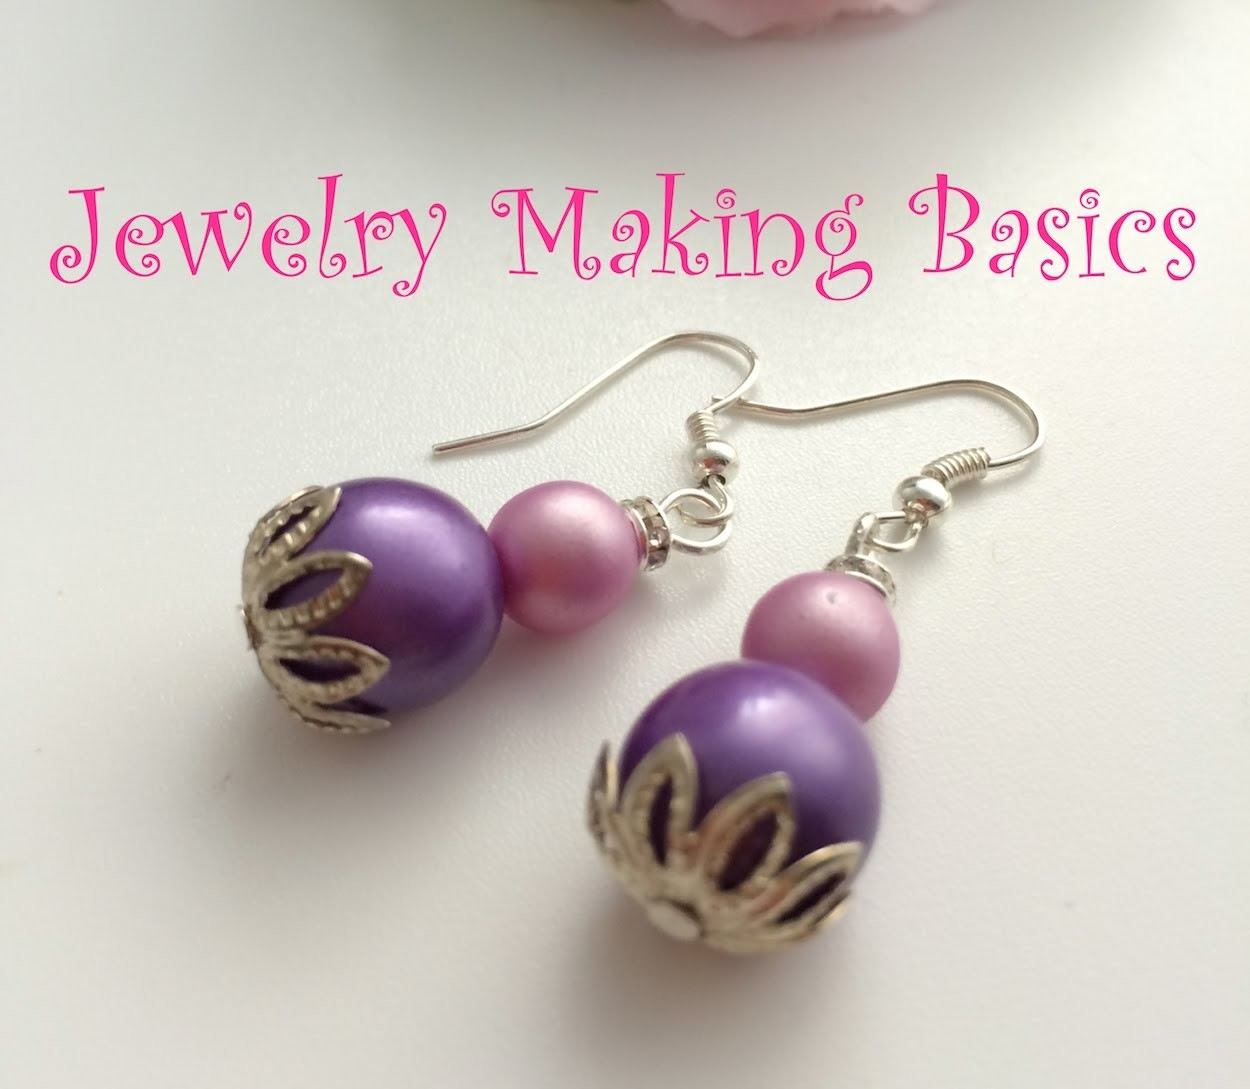 Jewelry Making Basics #4: Making a Simple Pair of Dangle Earrings